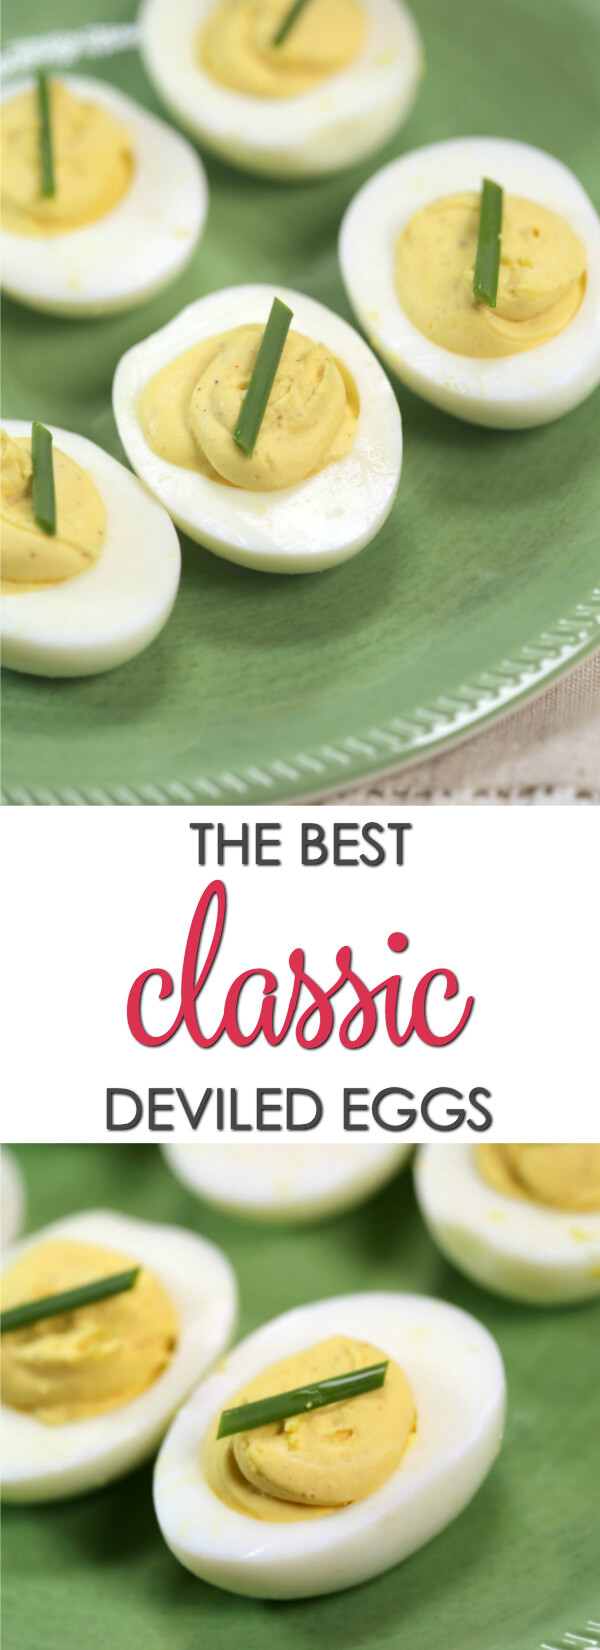 This best deviled eggs recipe is a classic recipe that every cook needs in their recipe box. It's a classic staple that is perfect for parties, luncheons or even an easy snack. I have tweaked my recipe to the point where it is absolutely perfect! Just the right balance of creamy, zesty and tangy. This easy deviled eggs recipe is a must try!  Get more easy deviled egg recipes at www.itisakeeper.com  #itisakeeper #recipe #easter #eggs #easyrecipe #appetizer #partyfood